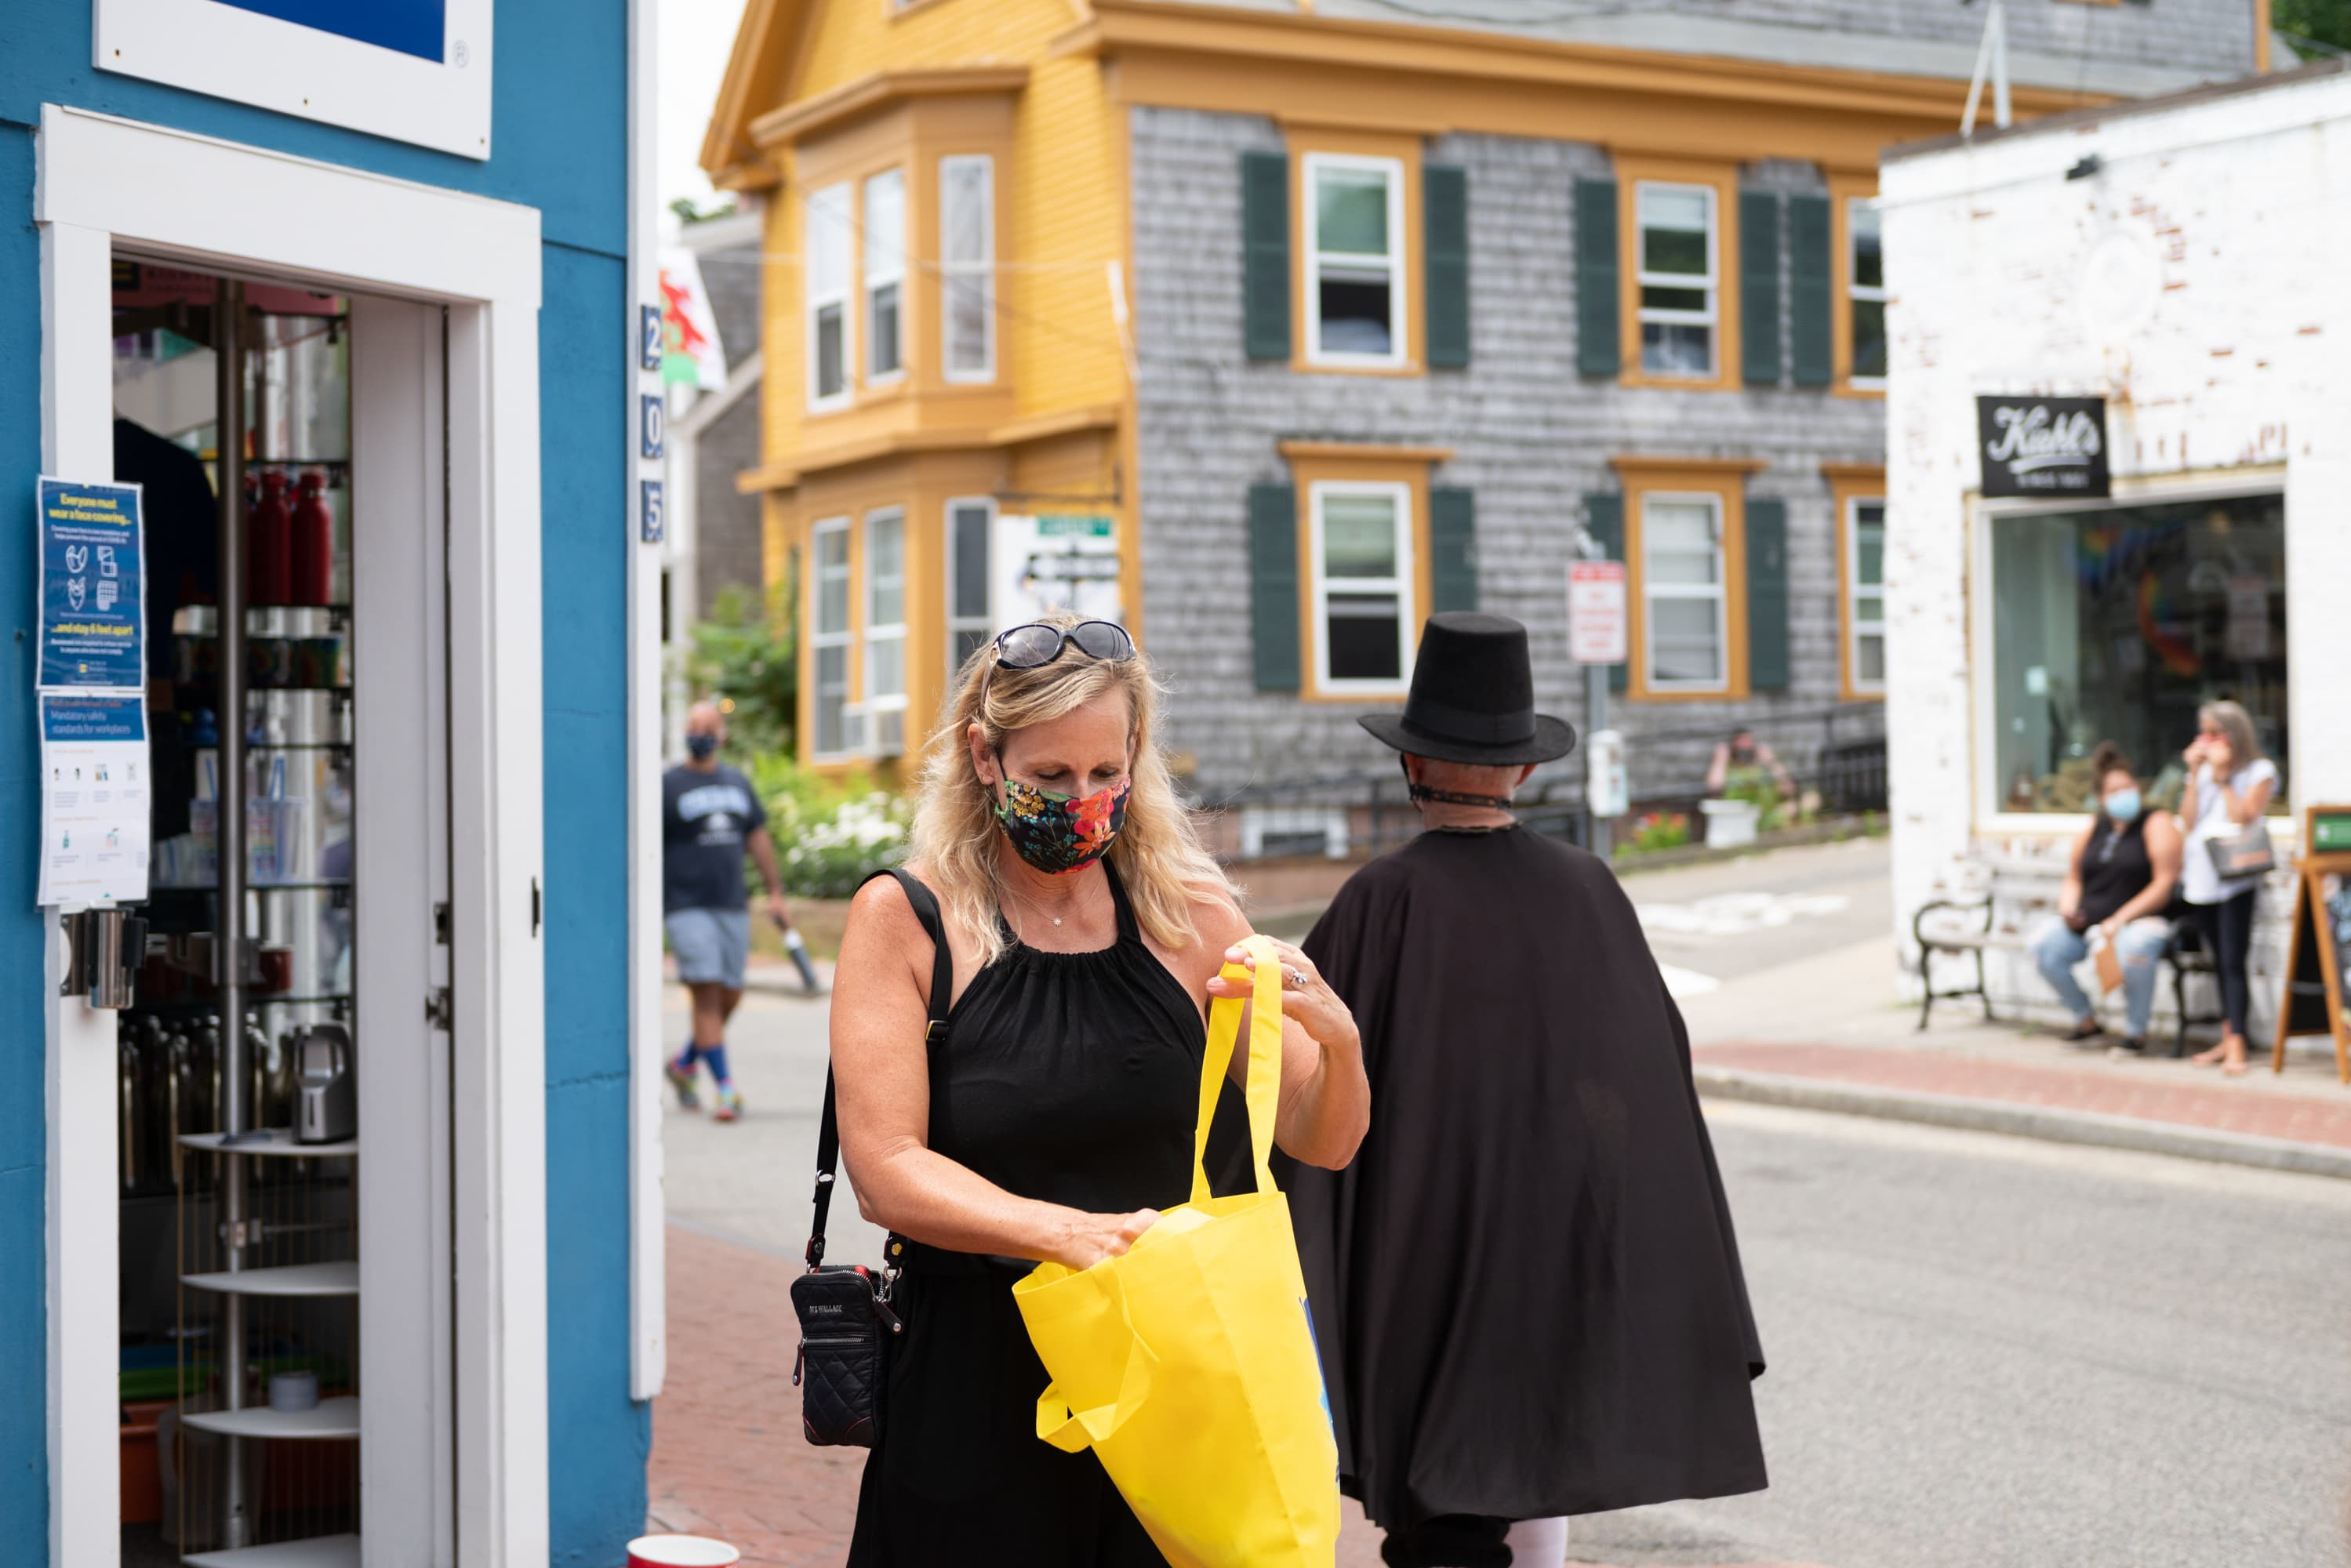 Small business confidence rebounds from all-time low, but Main Street still has a long way to go